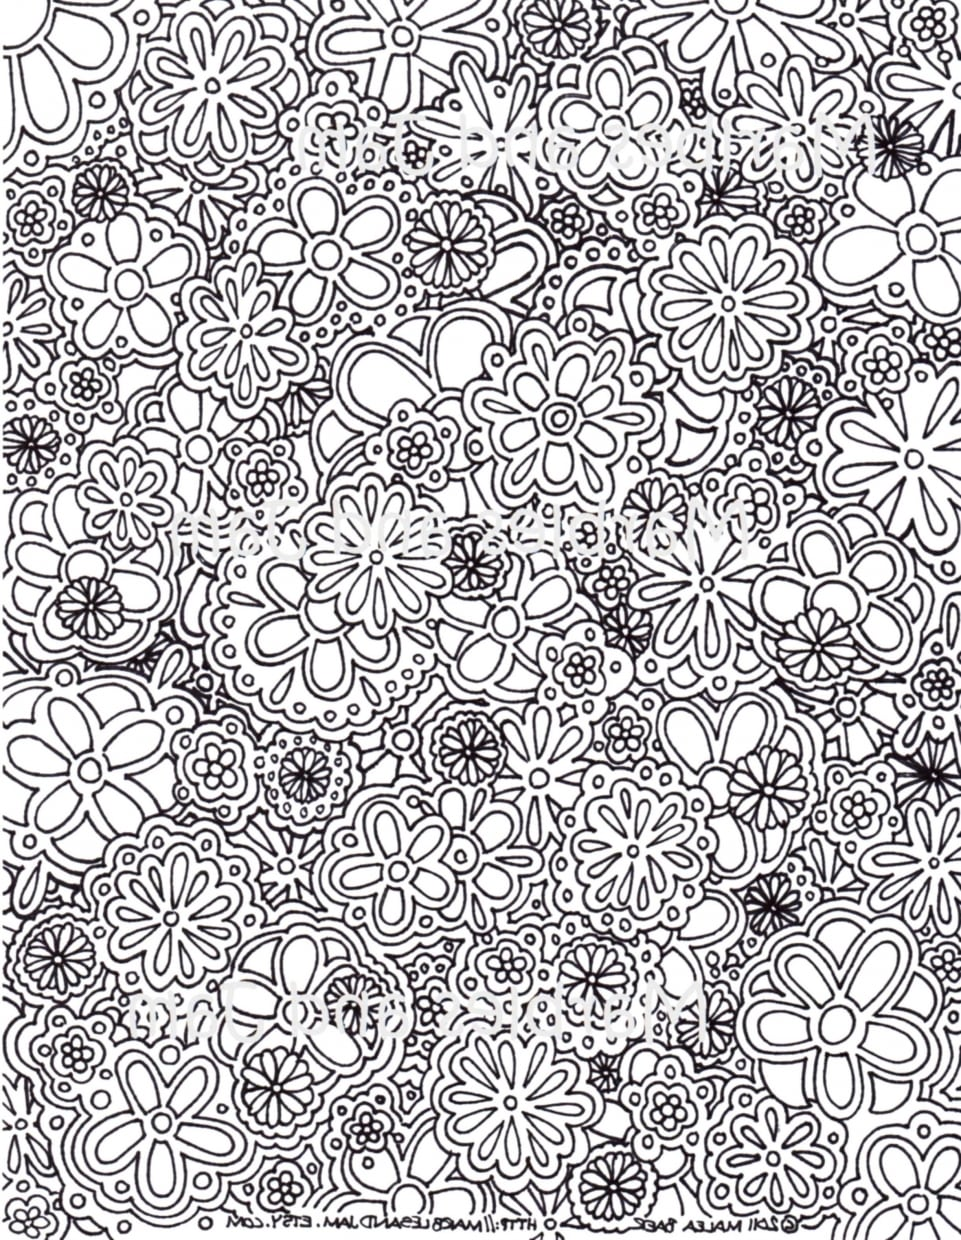 Get This Free Complex Coloring Pages To Print For Adults S8cje !